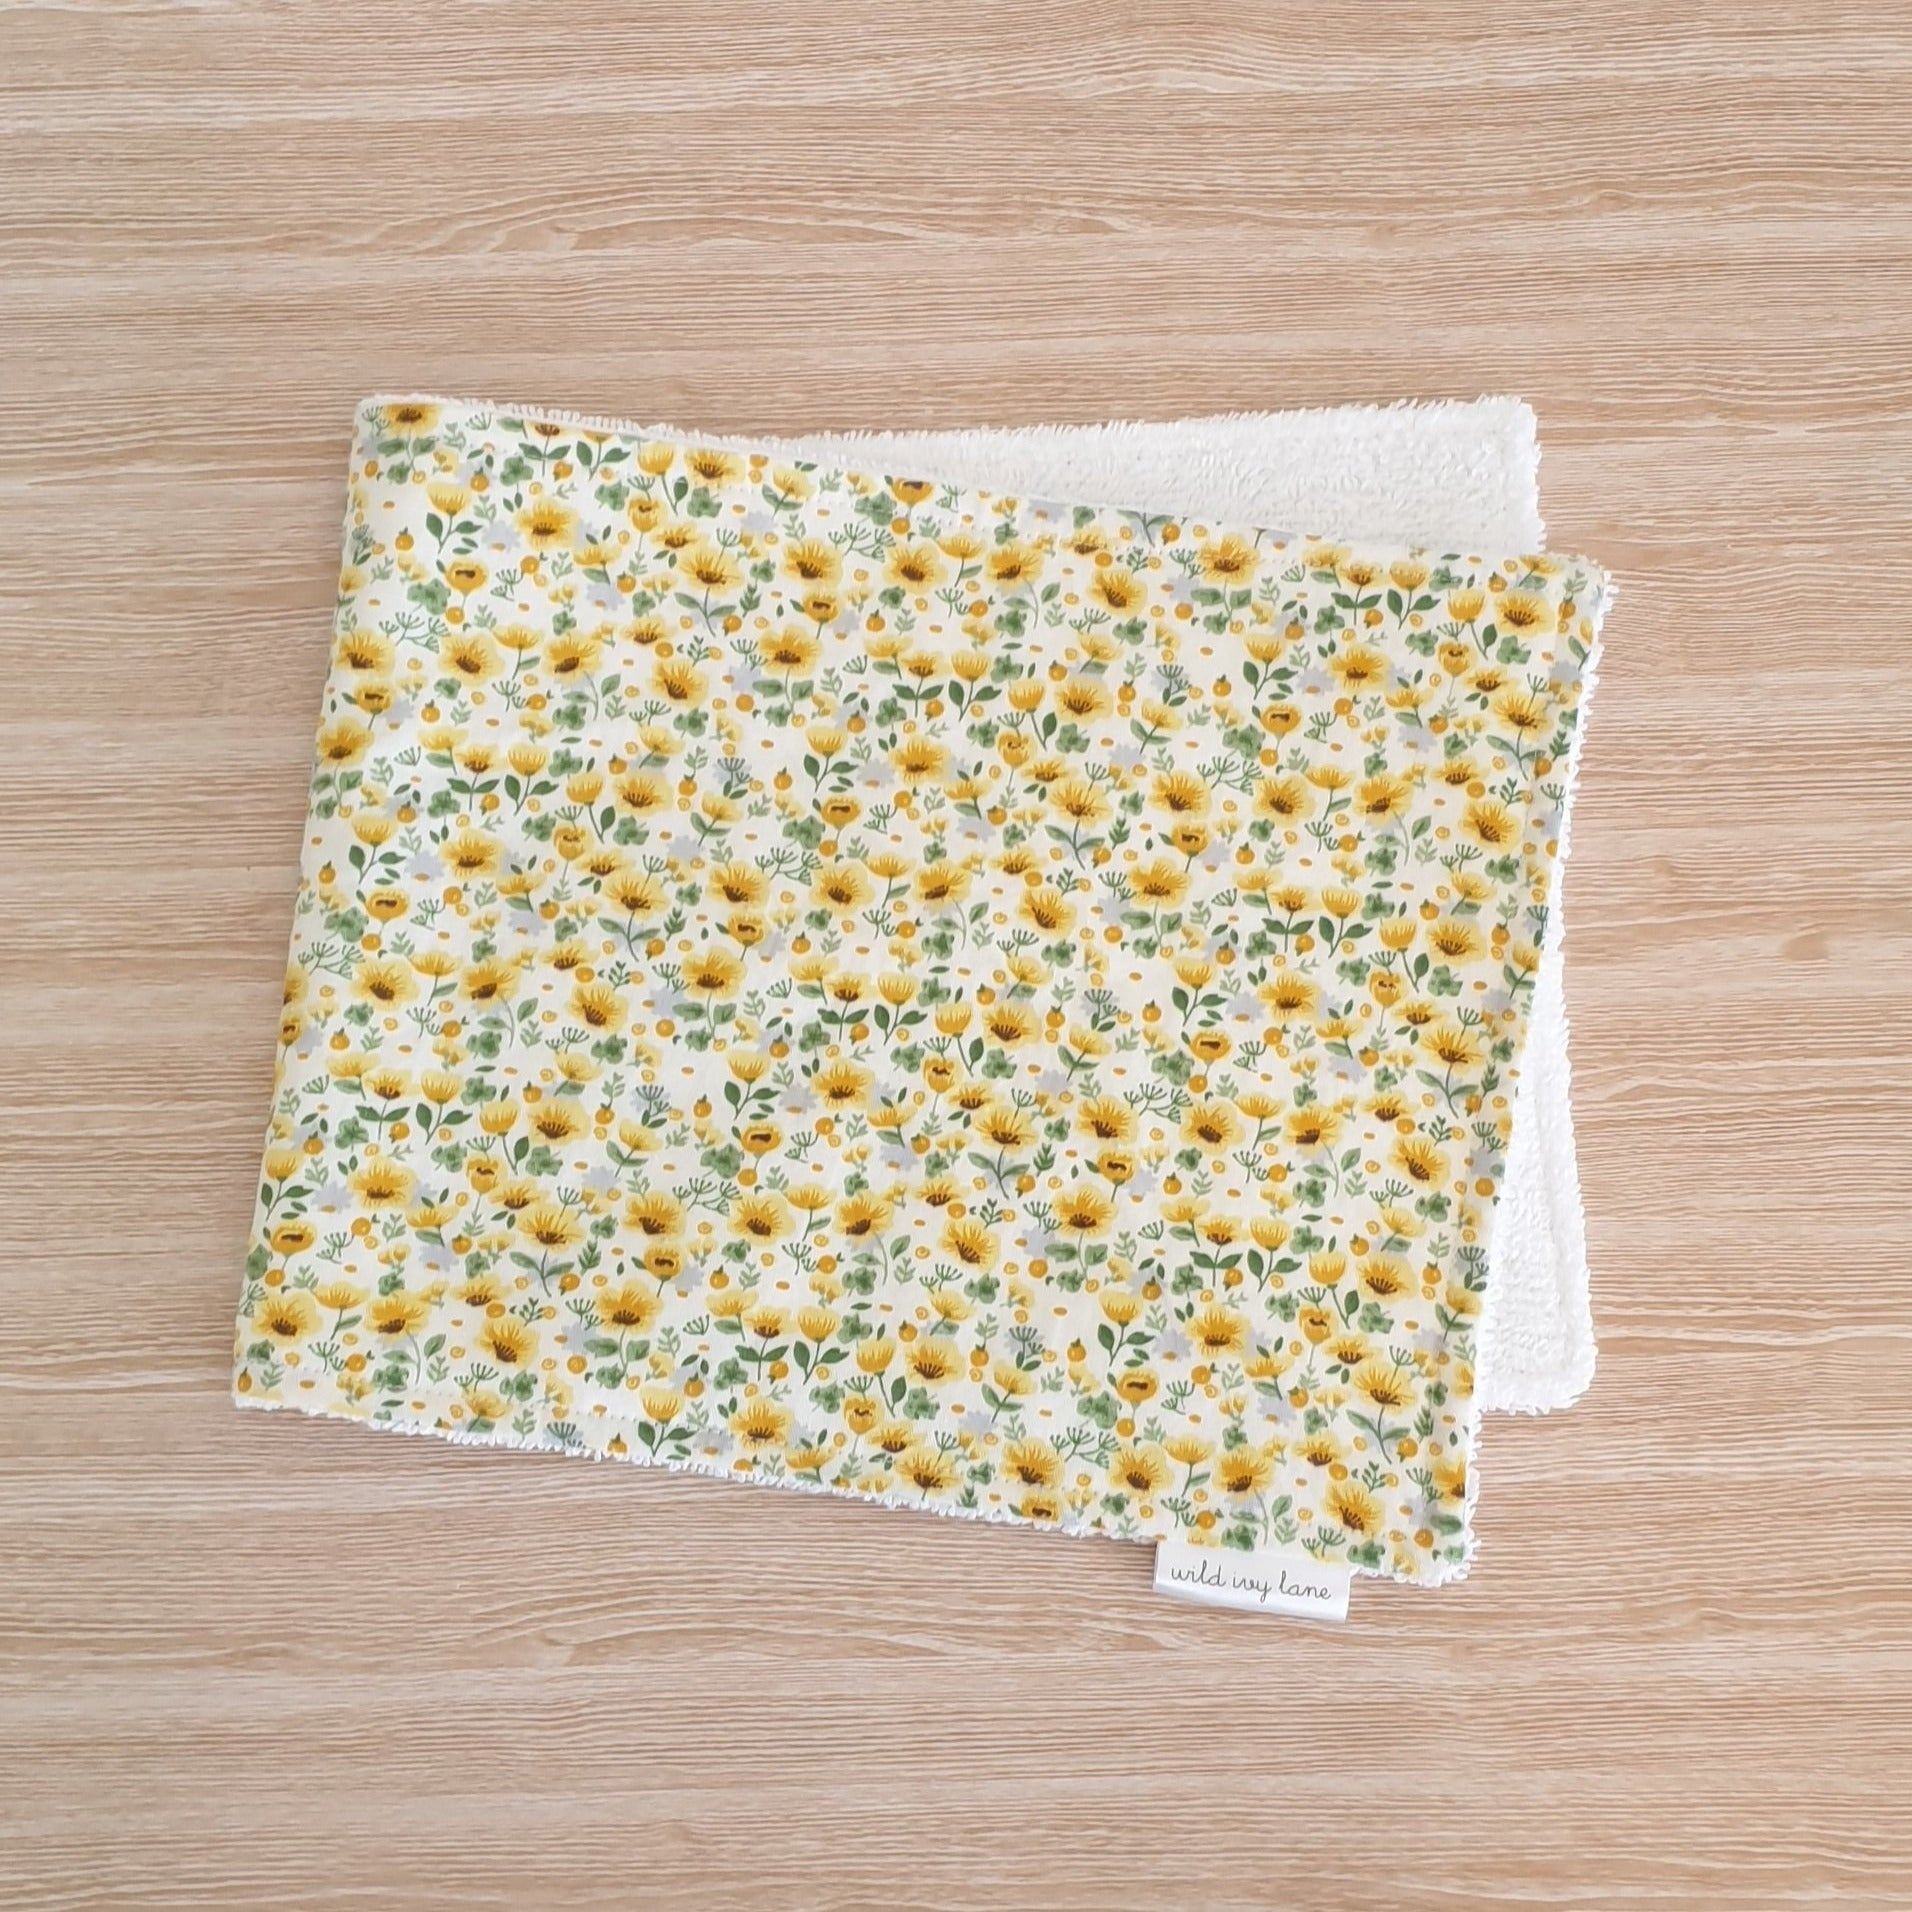 Burp Cloth - Goldie